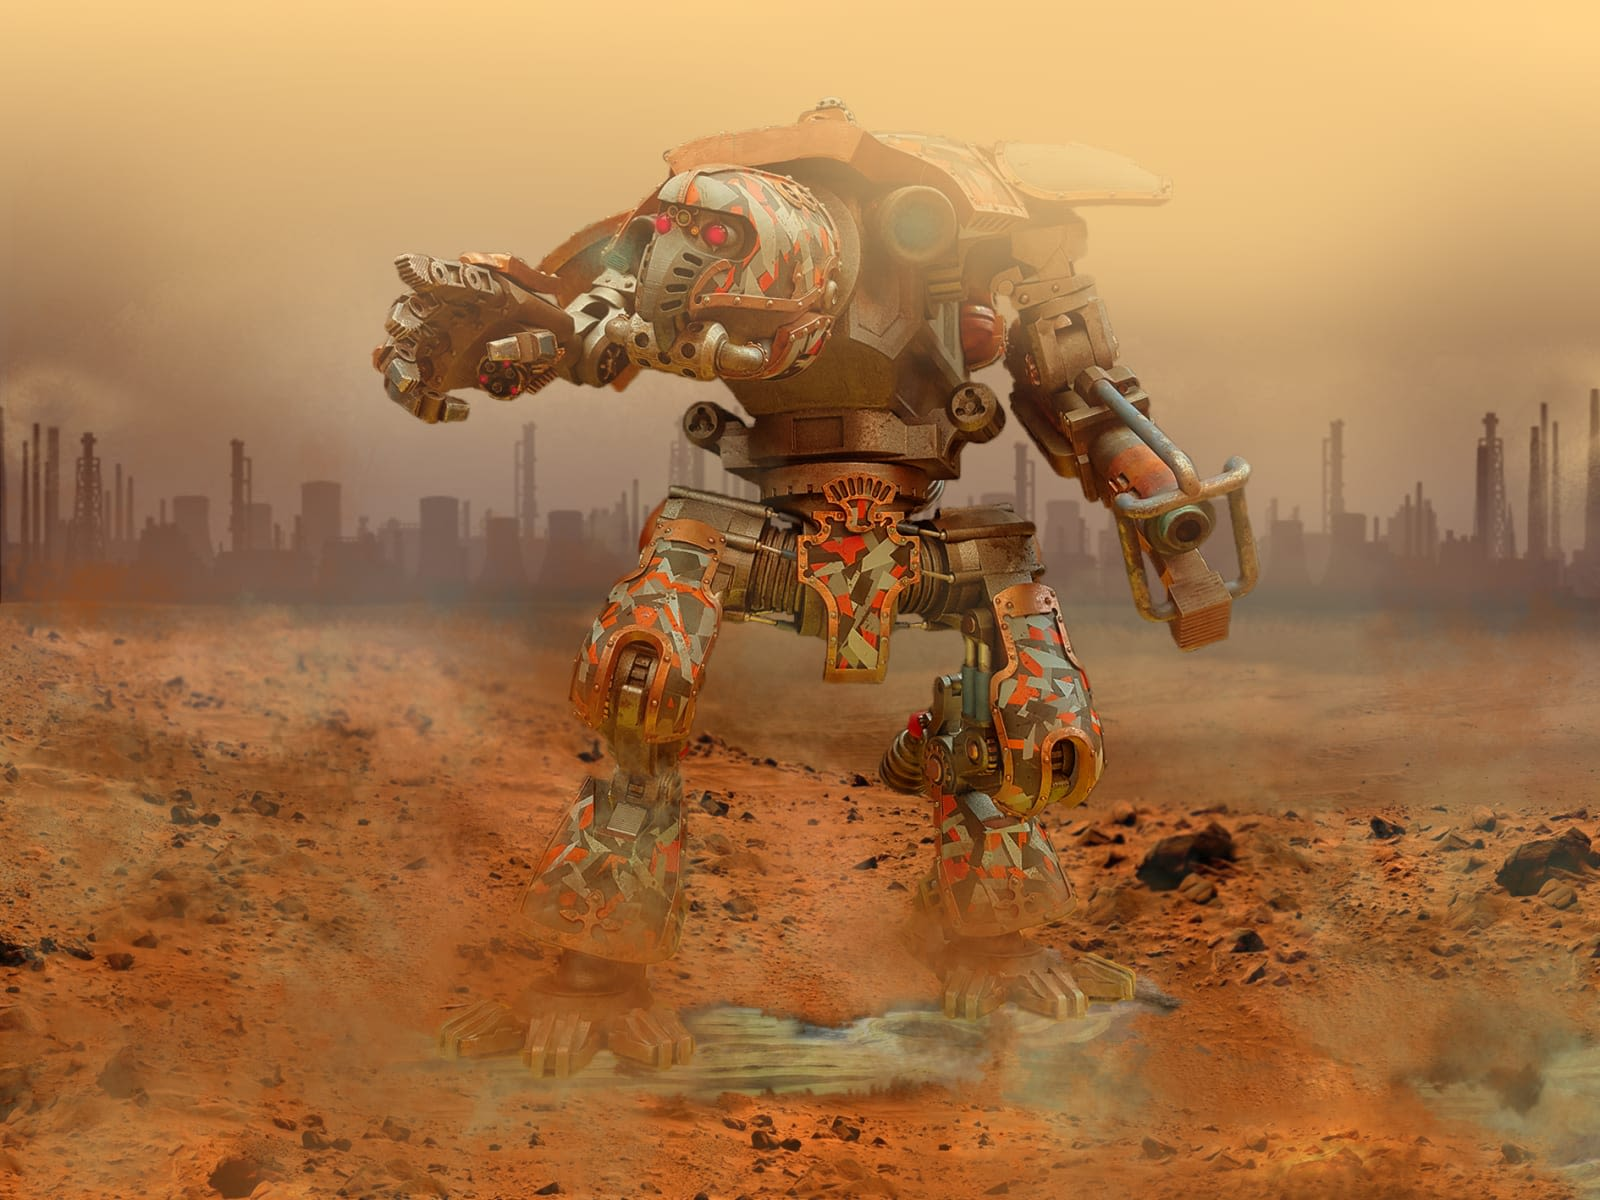 Digital drawing of a robot by Thomas Bull - BA Production Arts for Screen.